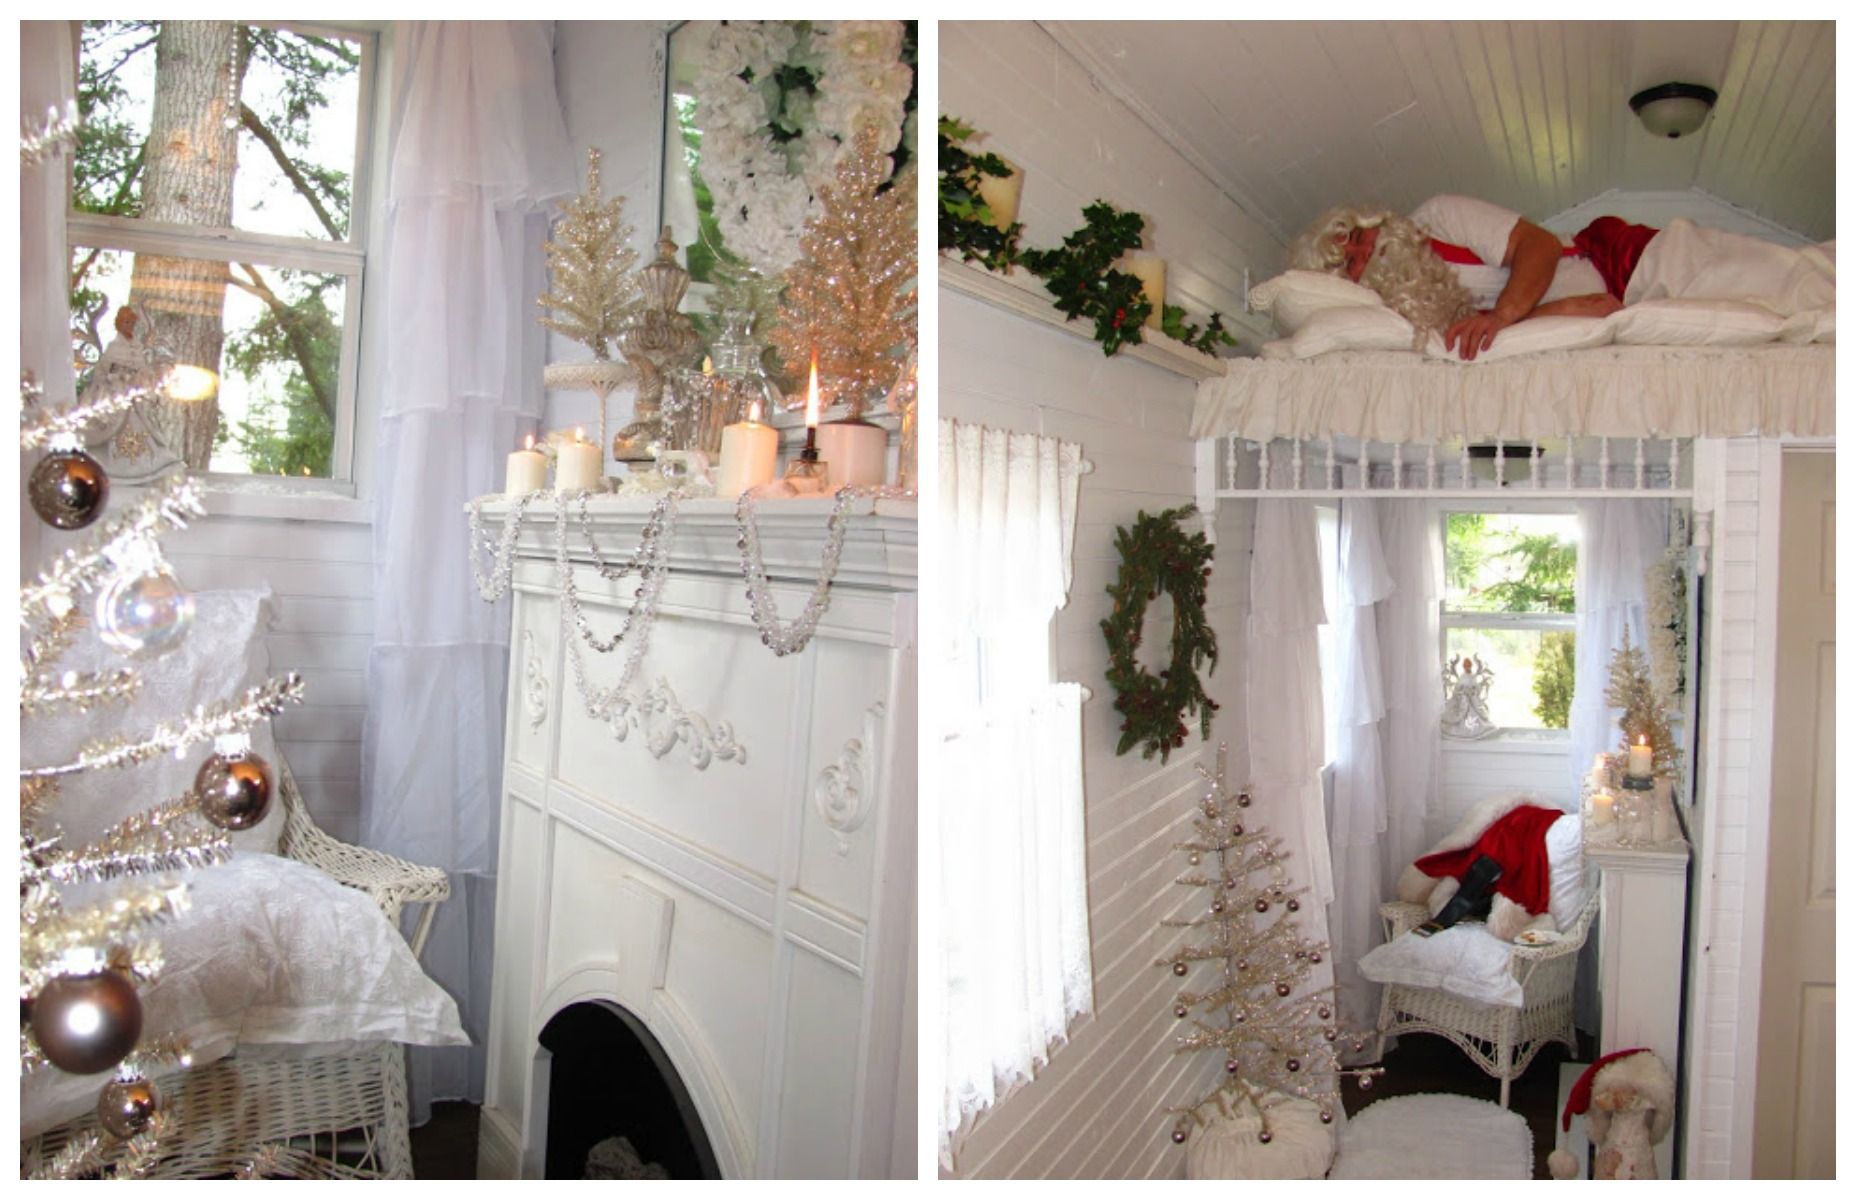 16 Small Space Christmas Decorating Ideas - Tiny House Christmas